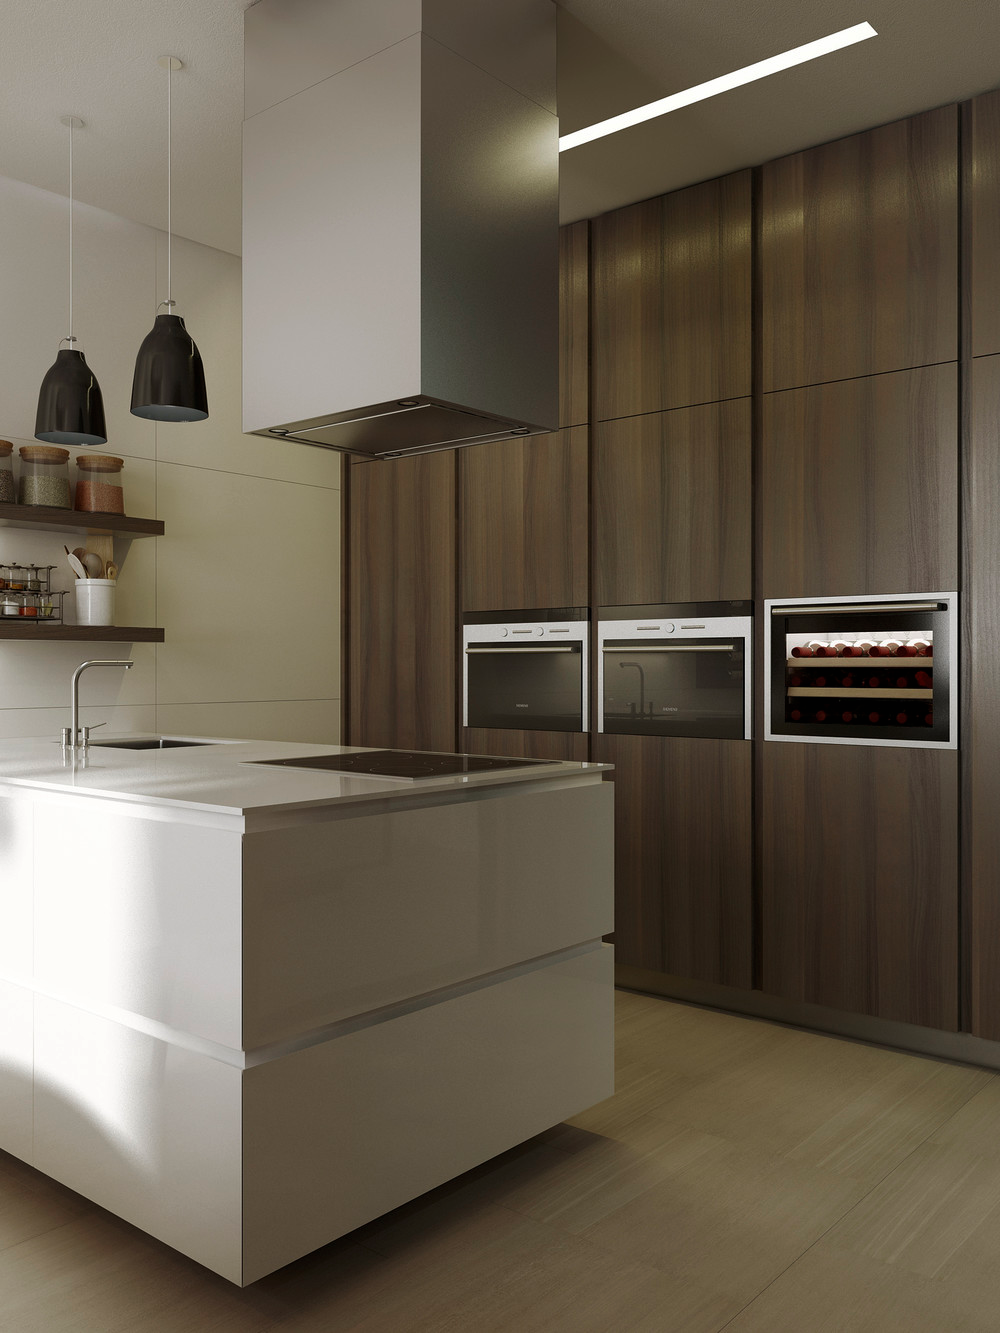 kitchen designs with built in ovens 10 modern kitchens that any home chef would envy 565